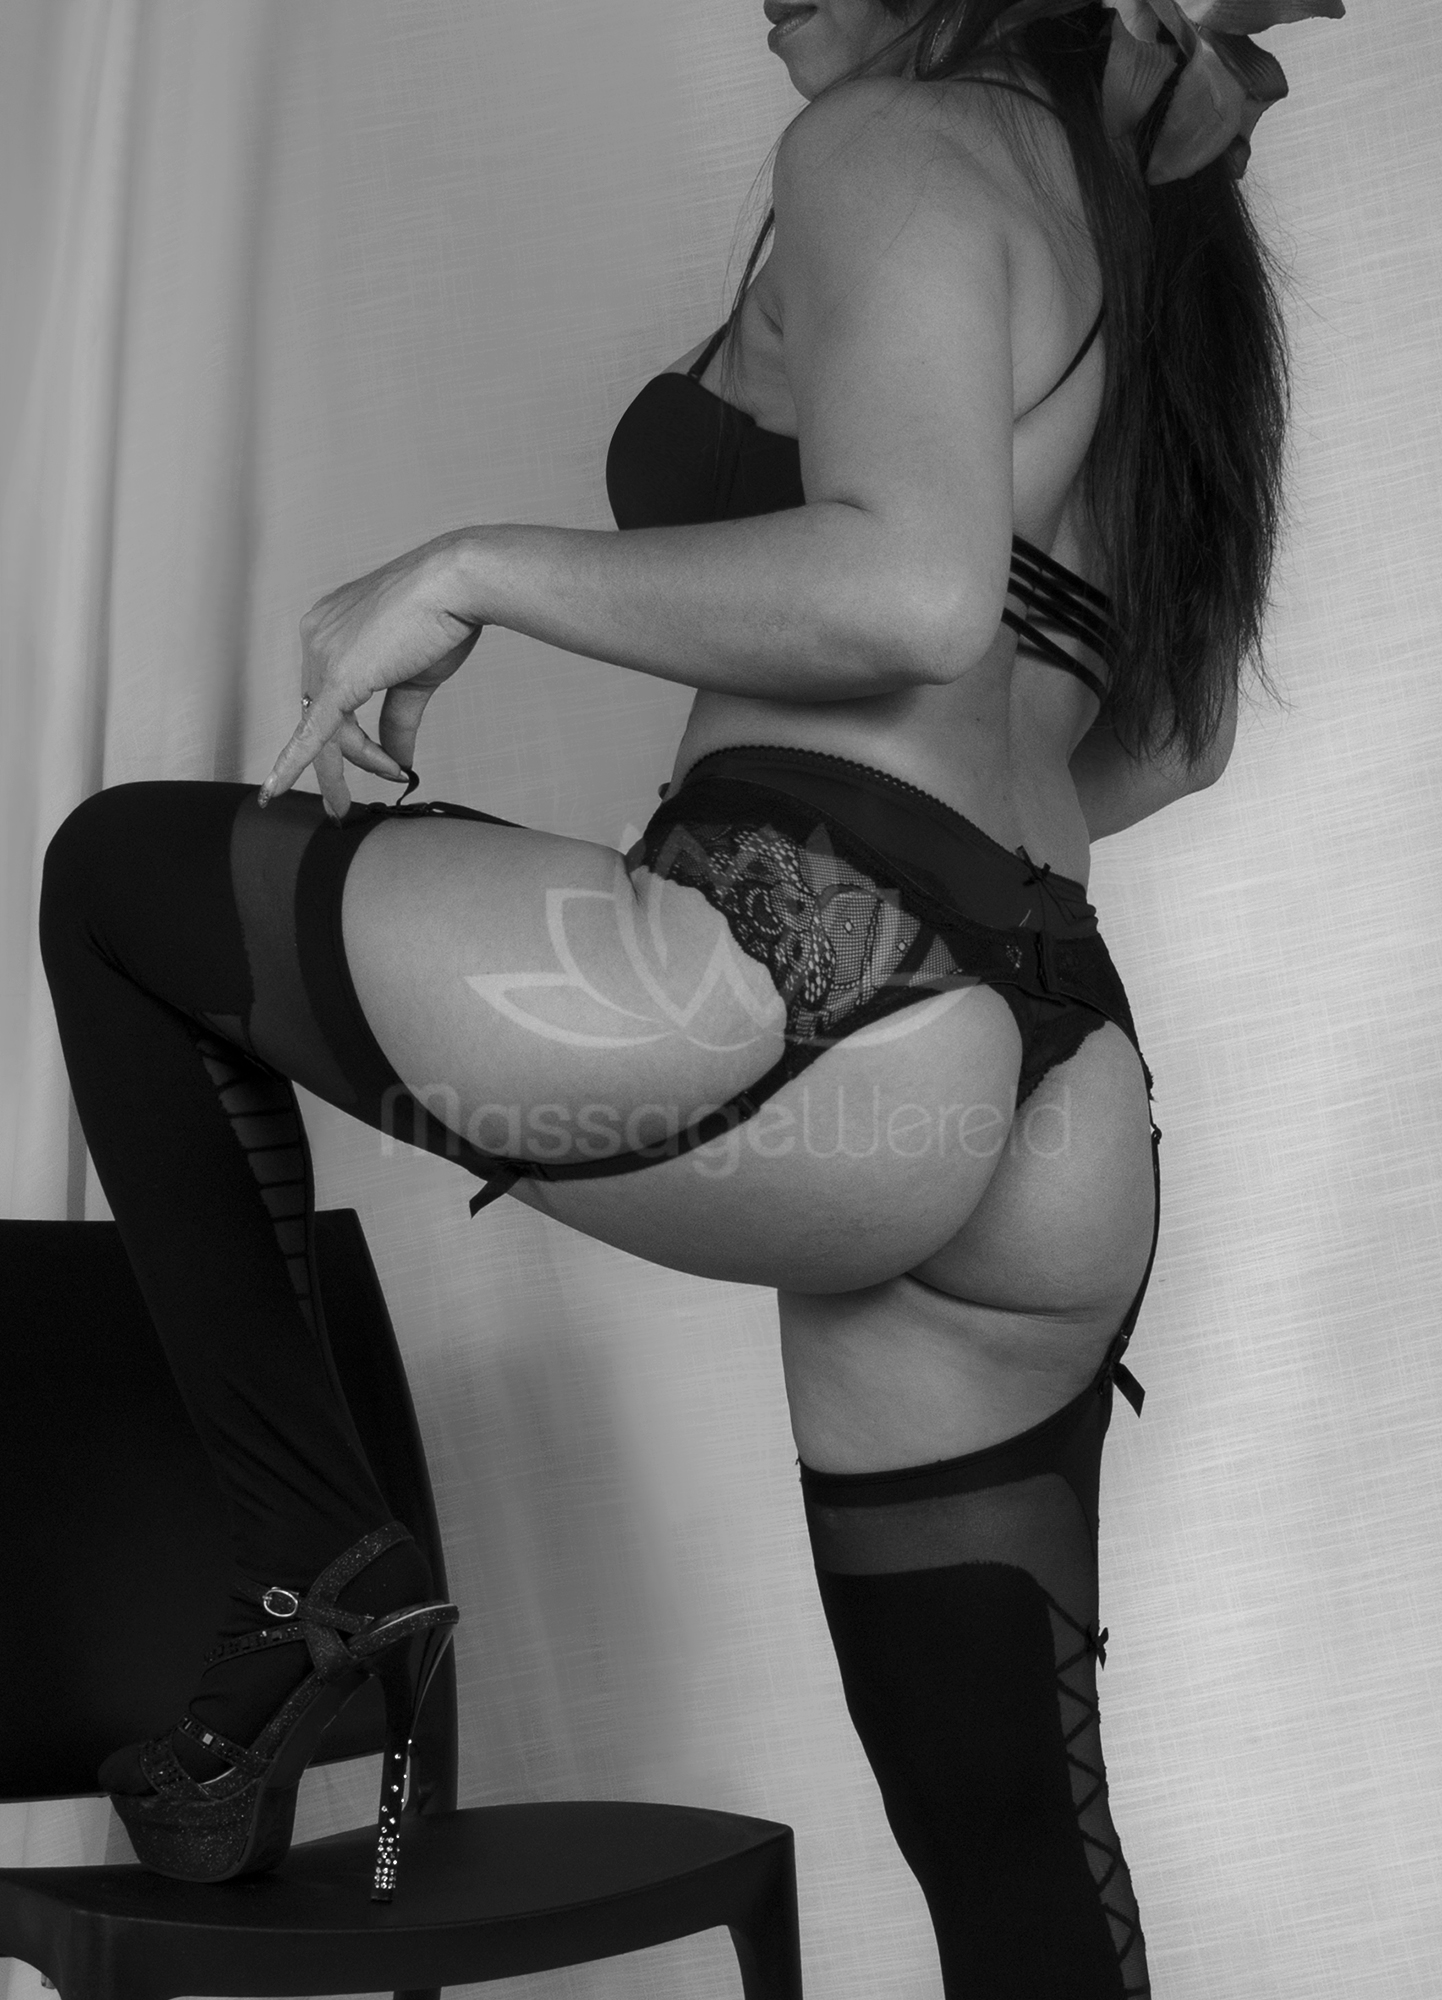 body to body massage zuid holland tantra massage gelderland